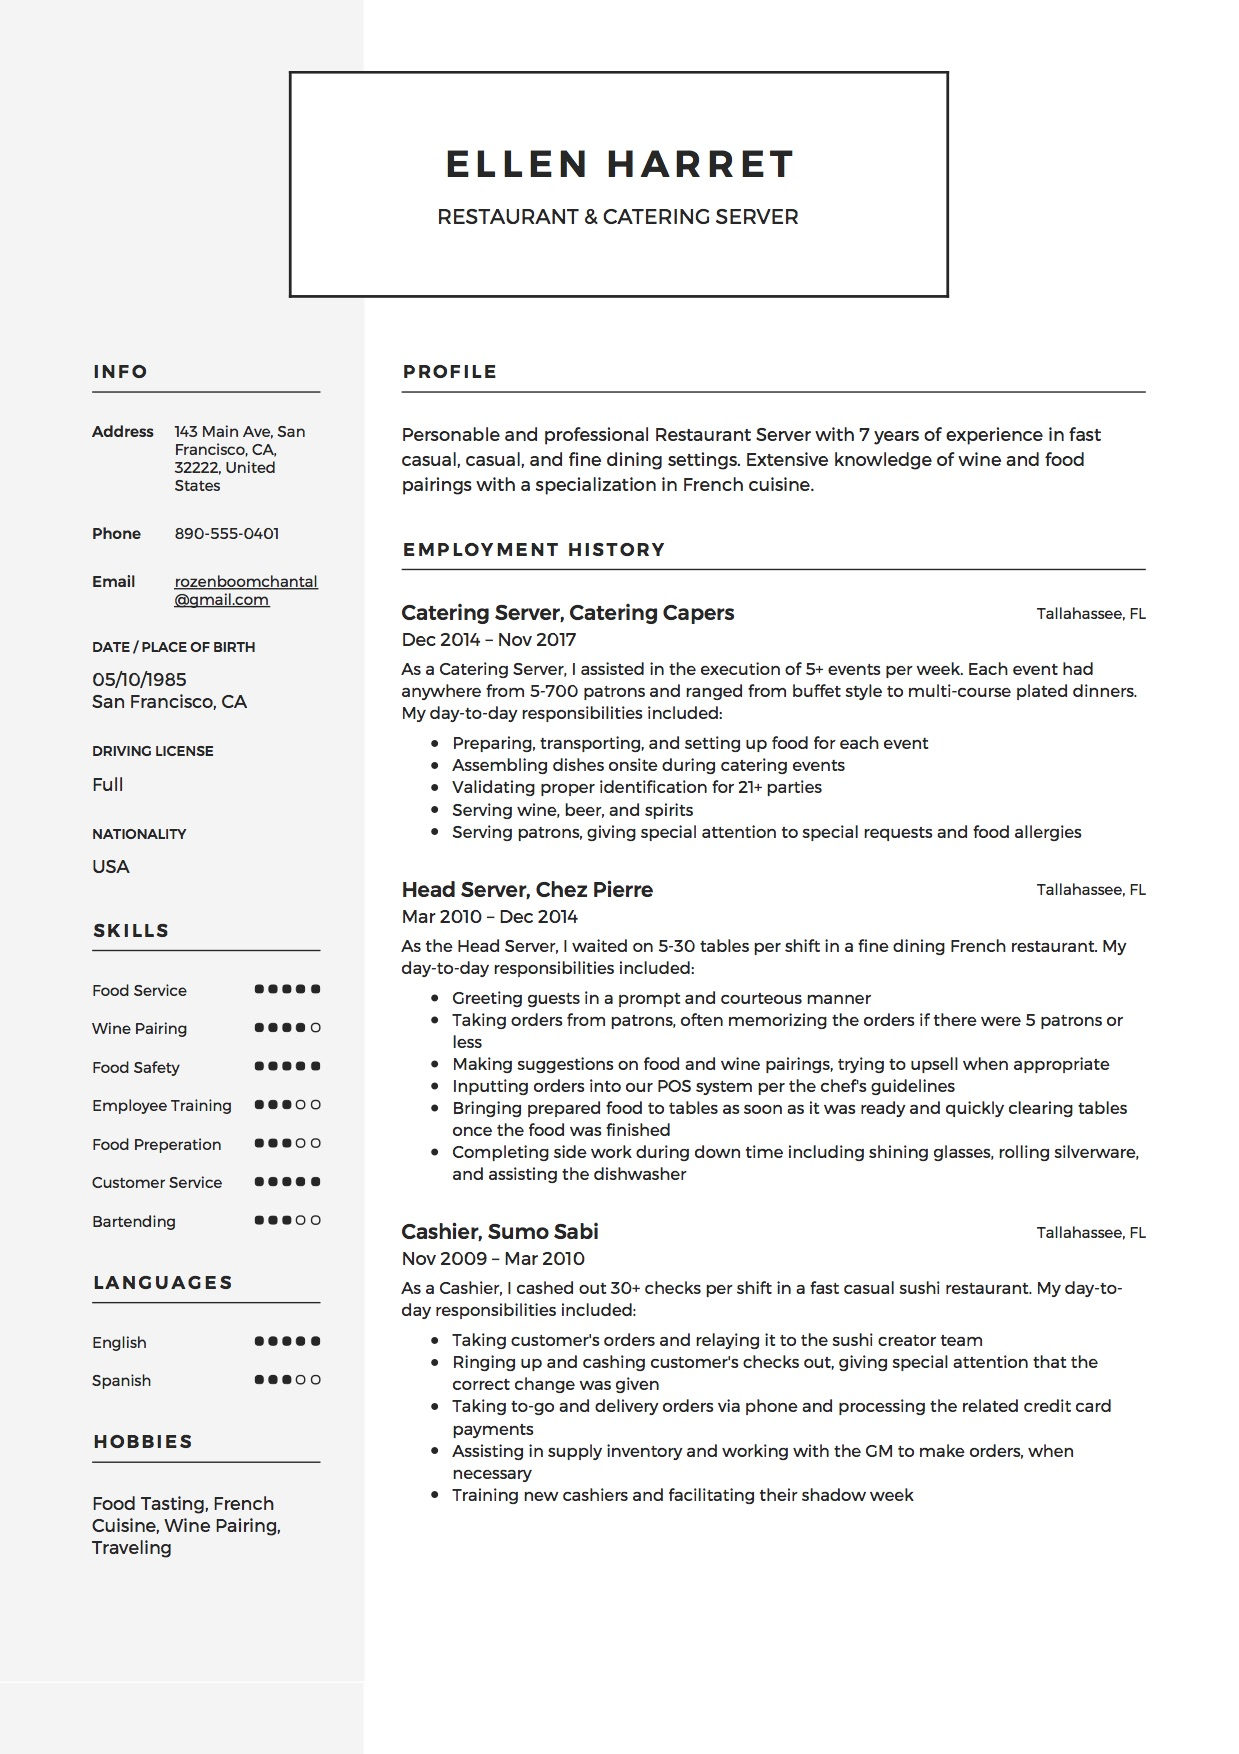 Restaurant Server Resume Samples  Restaurant Server Resume Examples